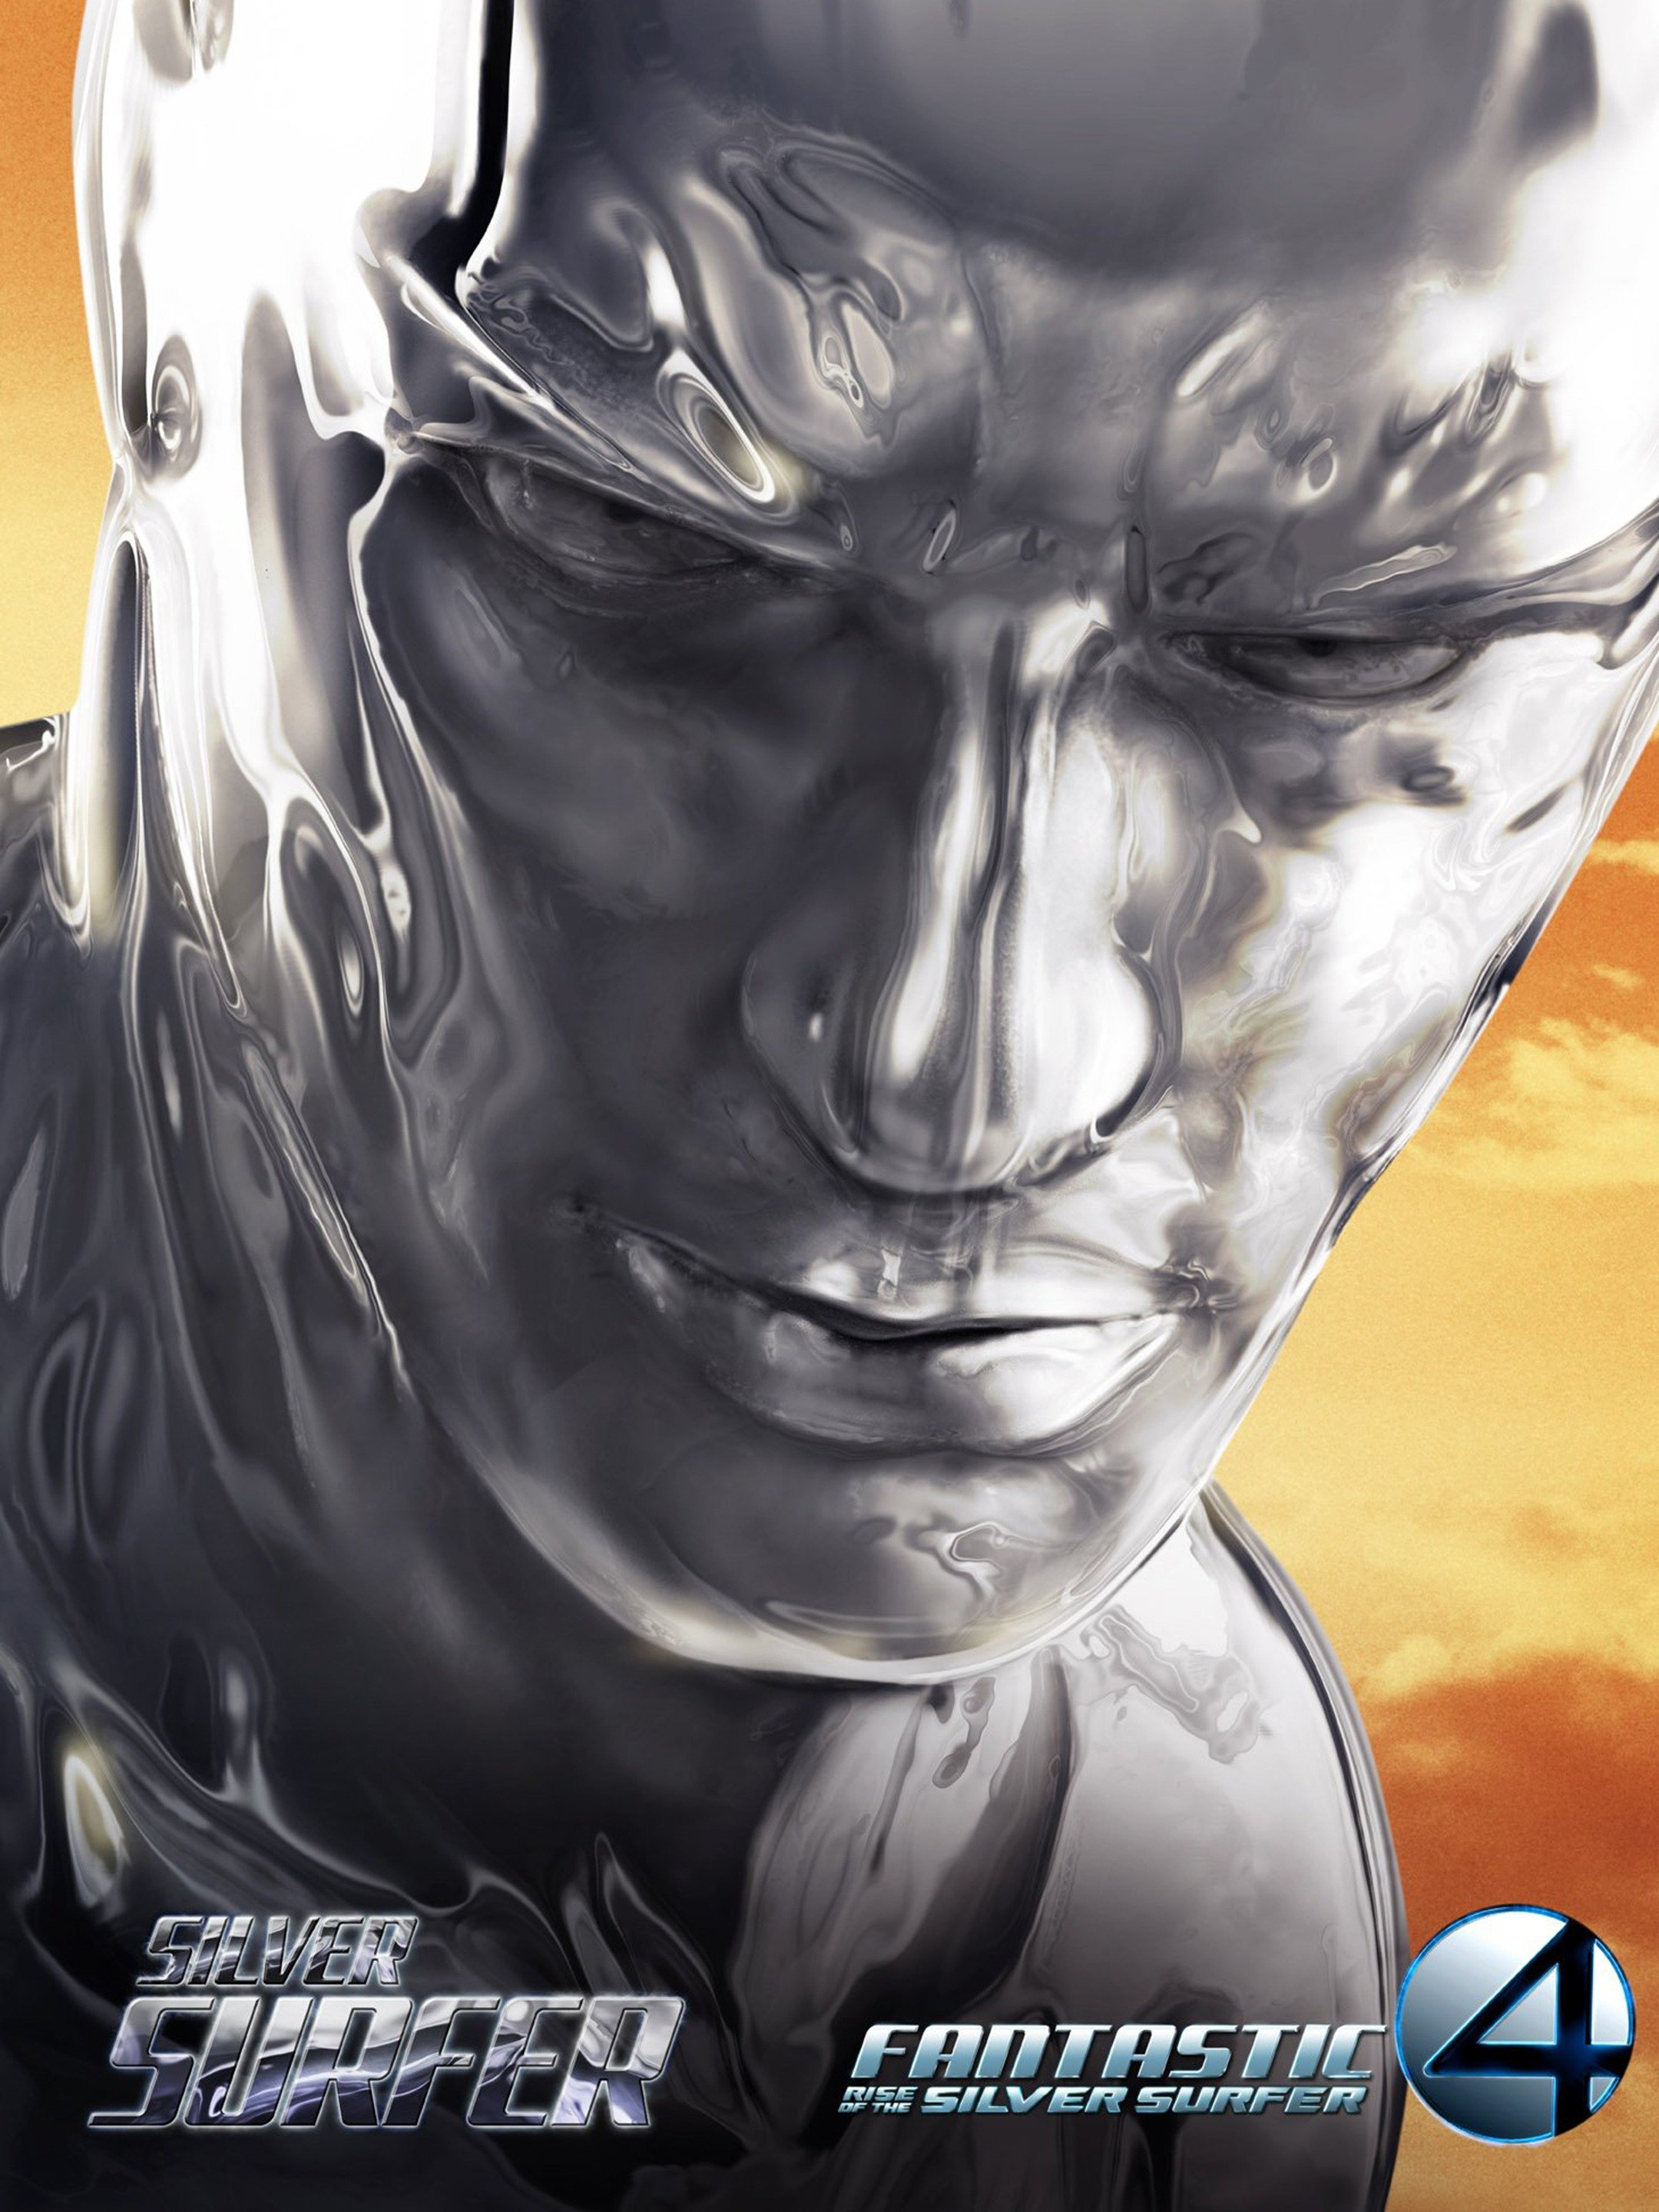 Fantastic Four Rise Of The Silver Surfer 2007 Rotten Tomatoes